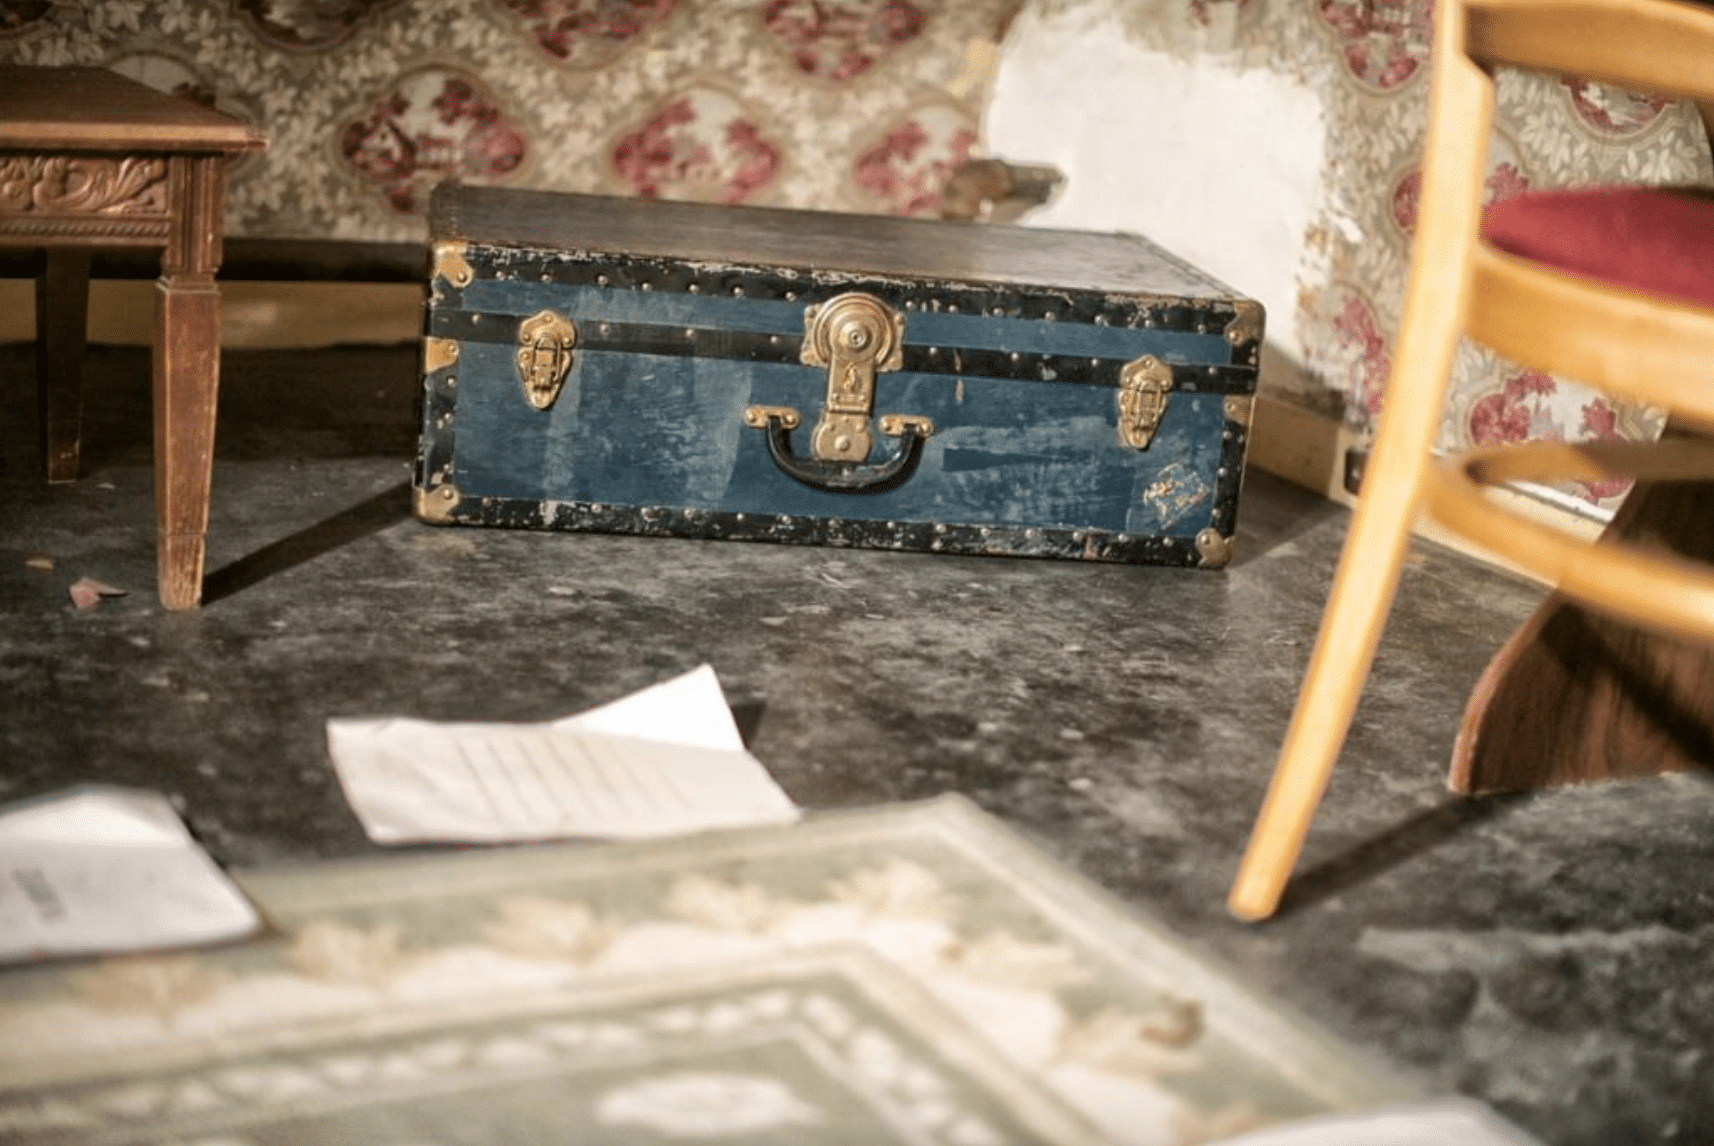 Toronto Escape Rooms: A simple briefcase at Captive Escape? Or a crucial key to escaping a precarious situation?